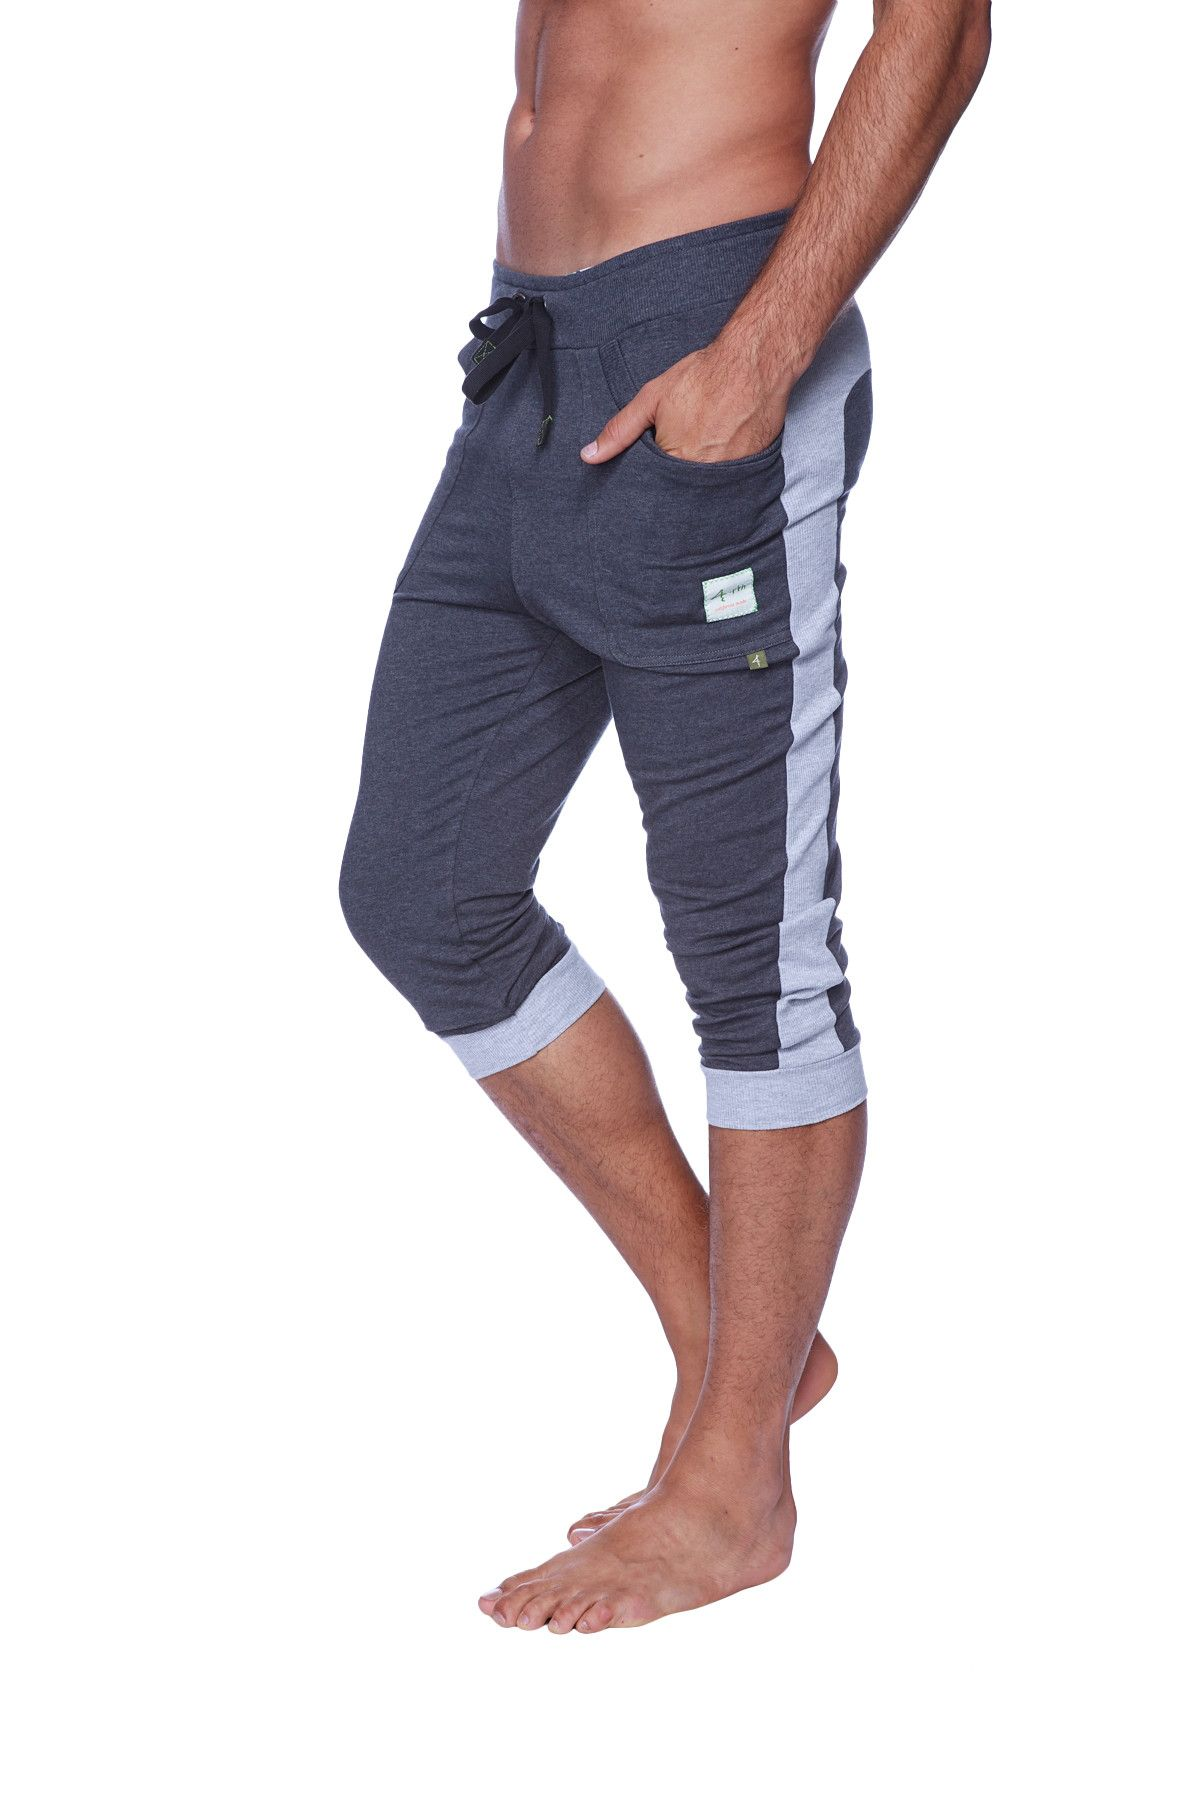 a54225b36e9baa Mens Cuffed Yoga Pants (Charcoal w/Heather Grey) in 2019 | Men's ...